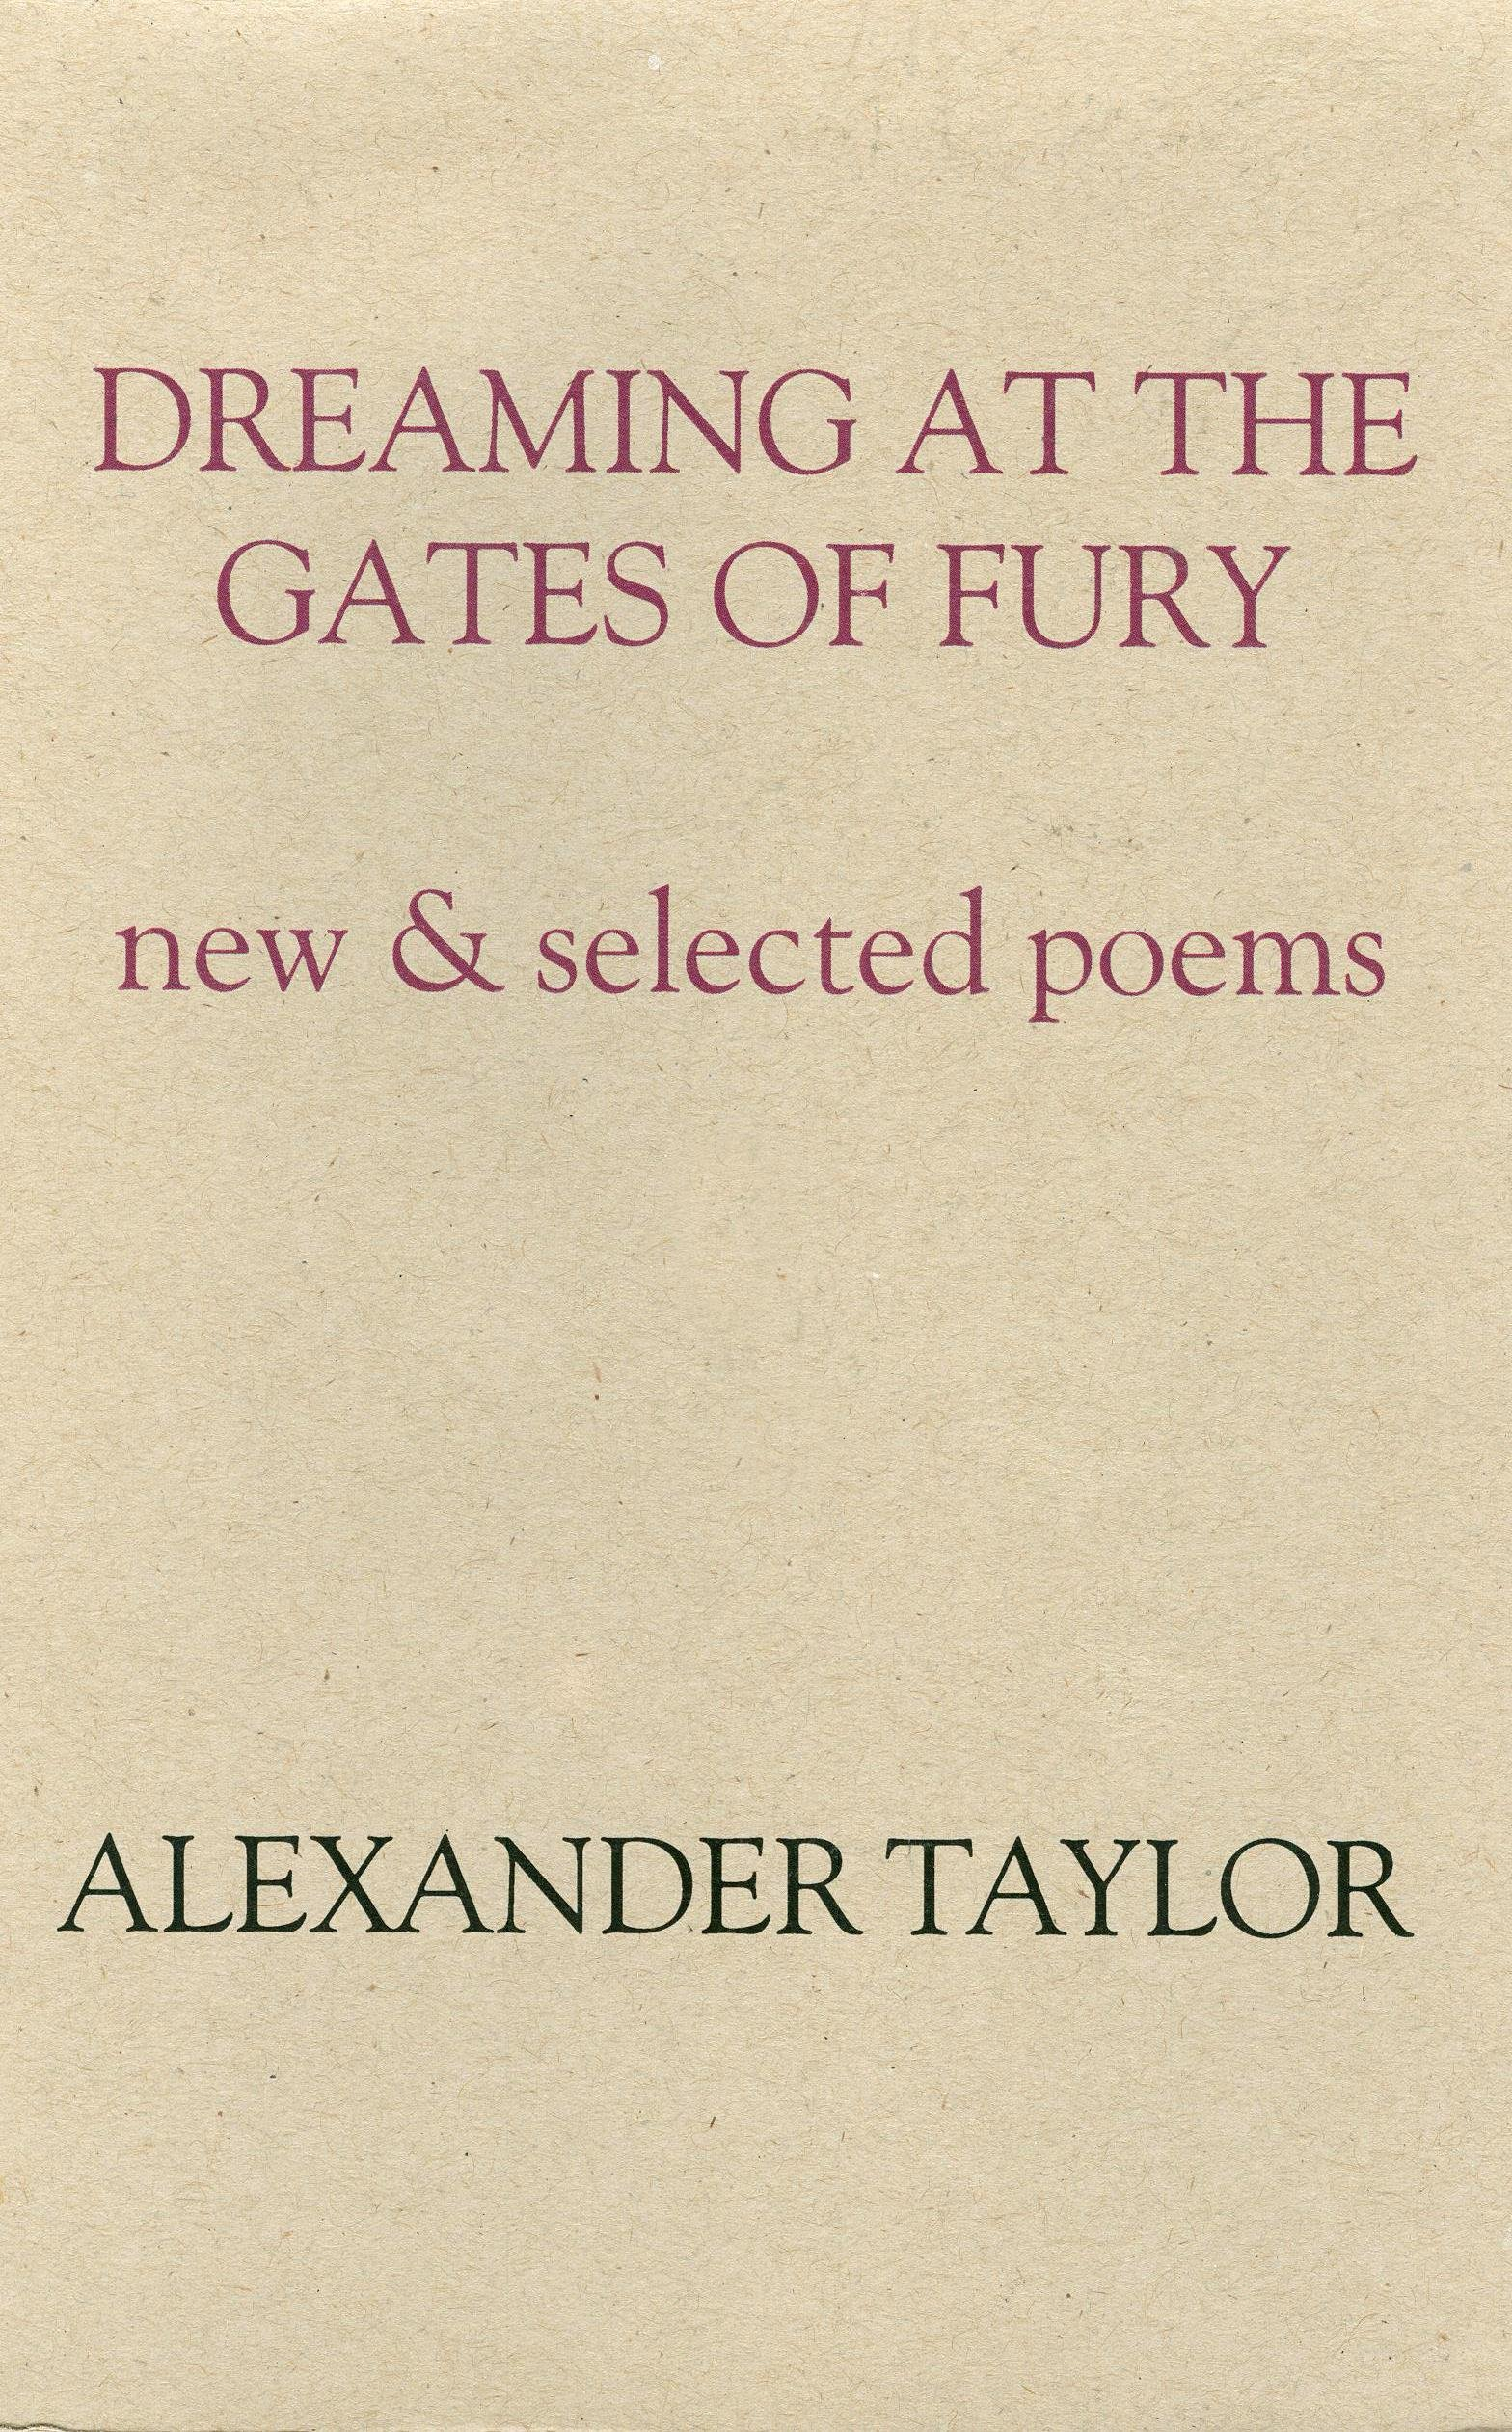 Download Dreaming At The Gates of Fury / New and Selected Poems ePub fb2 ebook